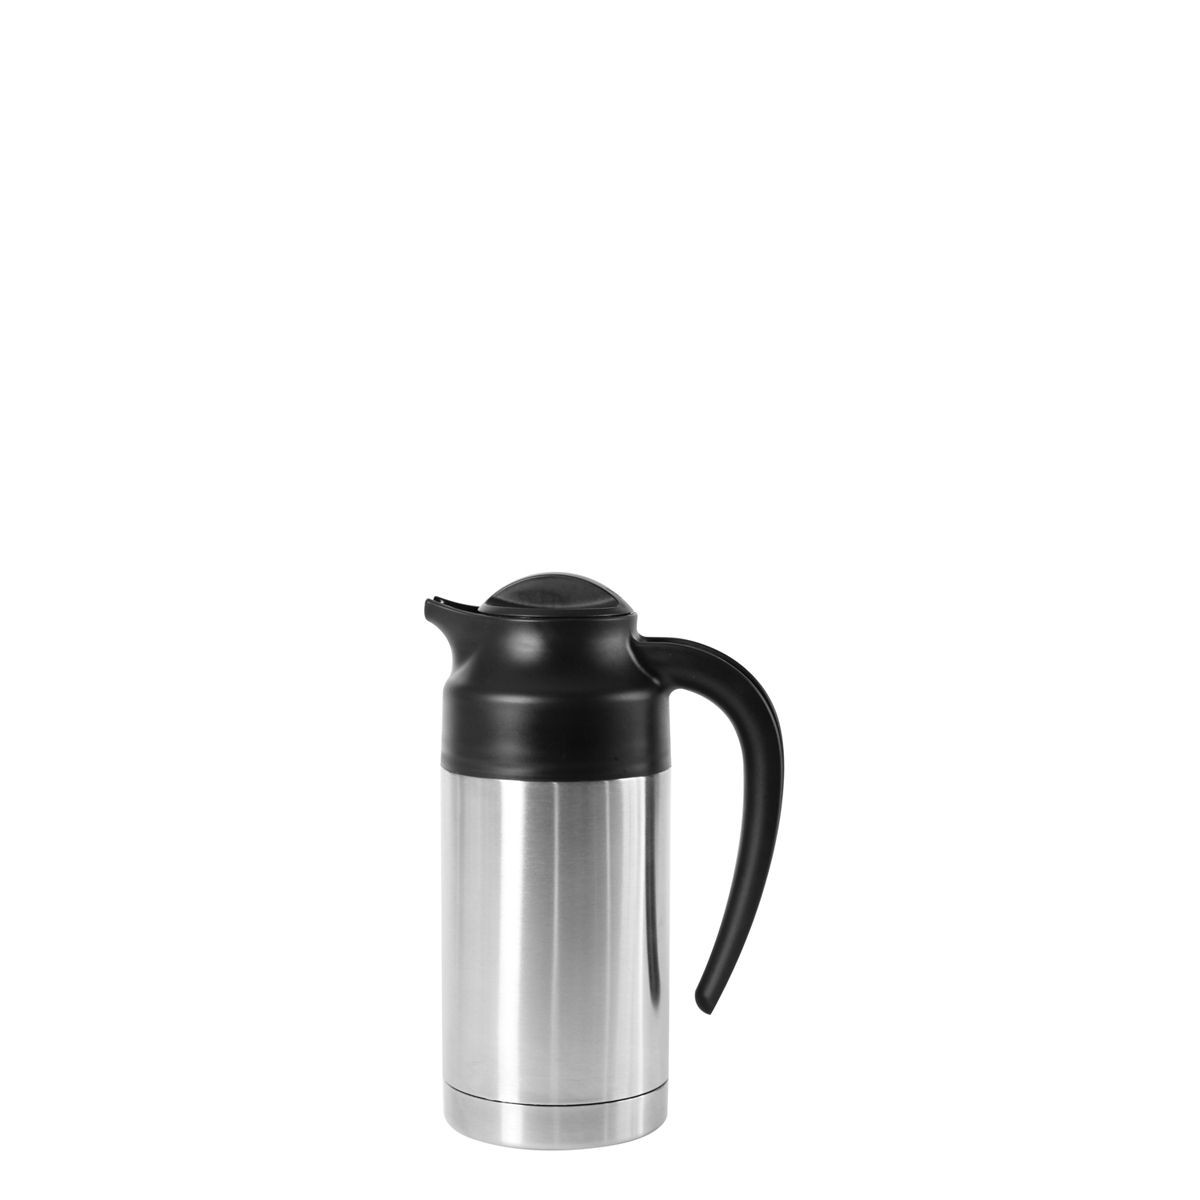 Service Ideas S2SN70 Steelvac Vacuum Carafe Without Base, 0.7 Liter